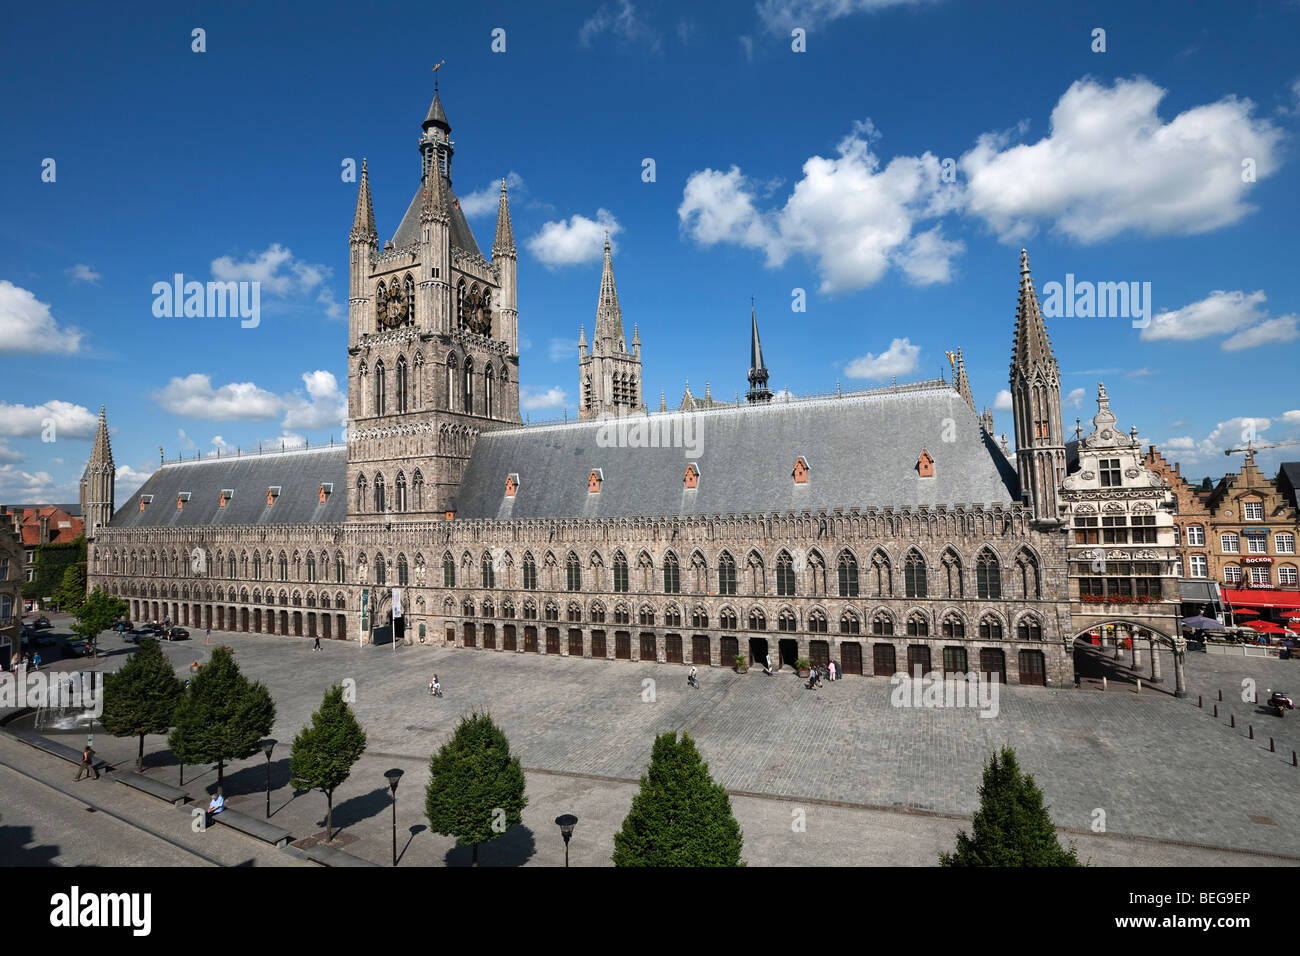 The Cloth Halls in the Grote Markt Albert 1. Stock Photo